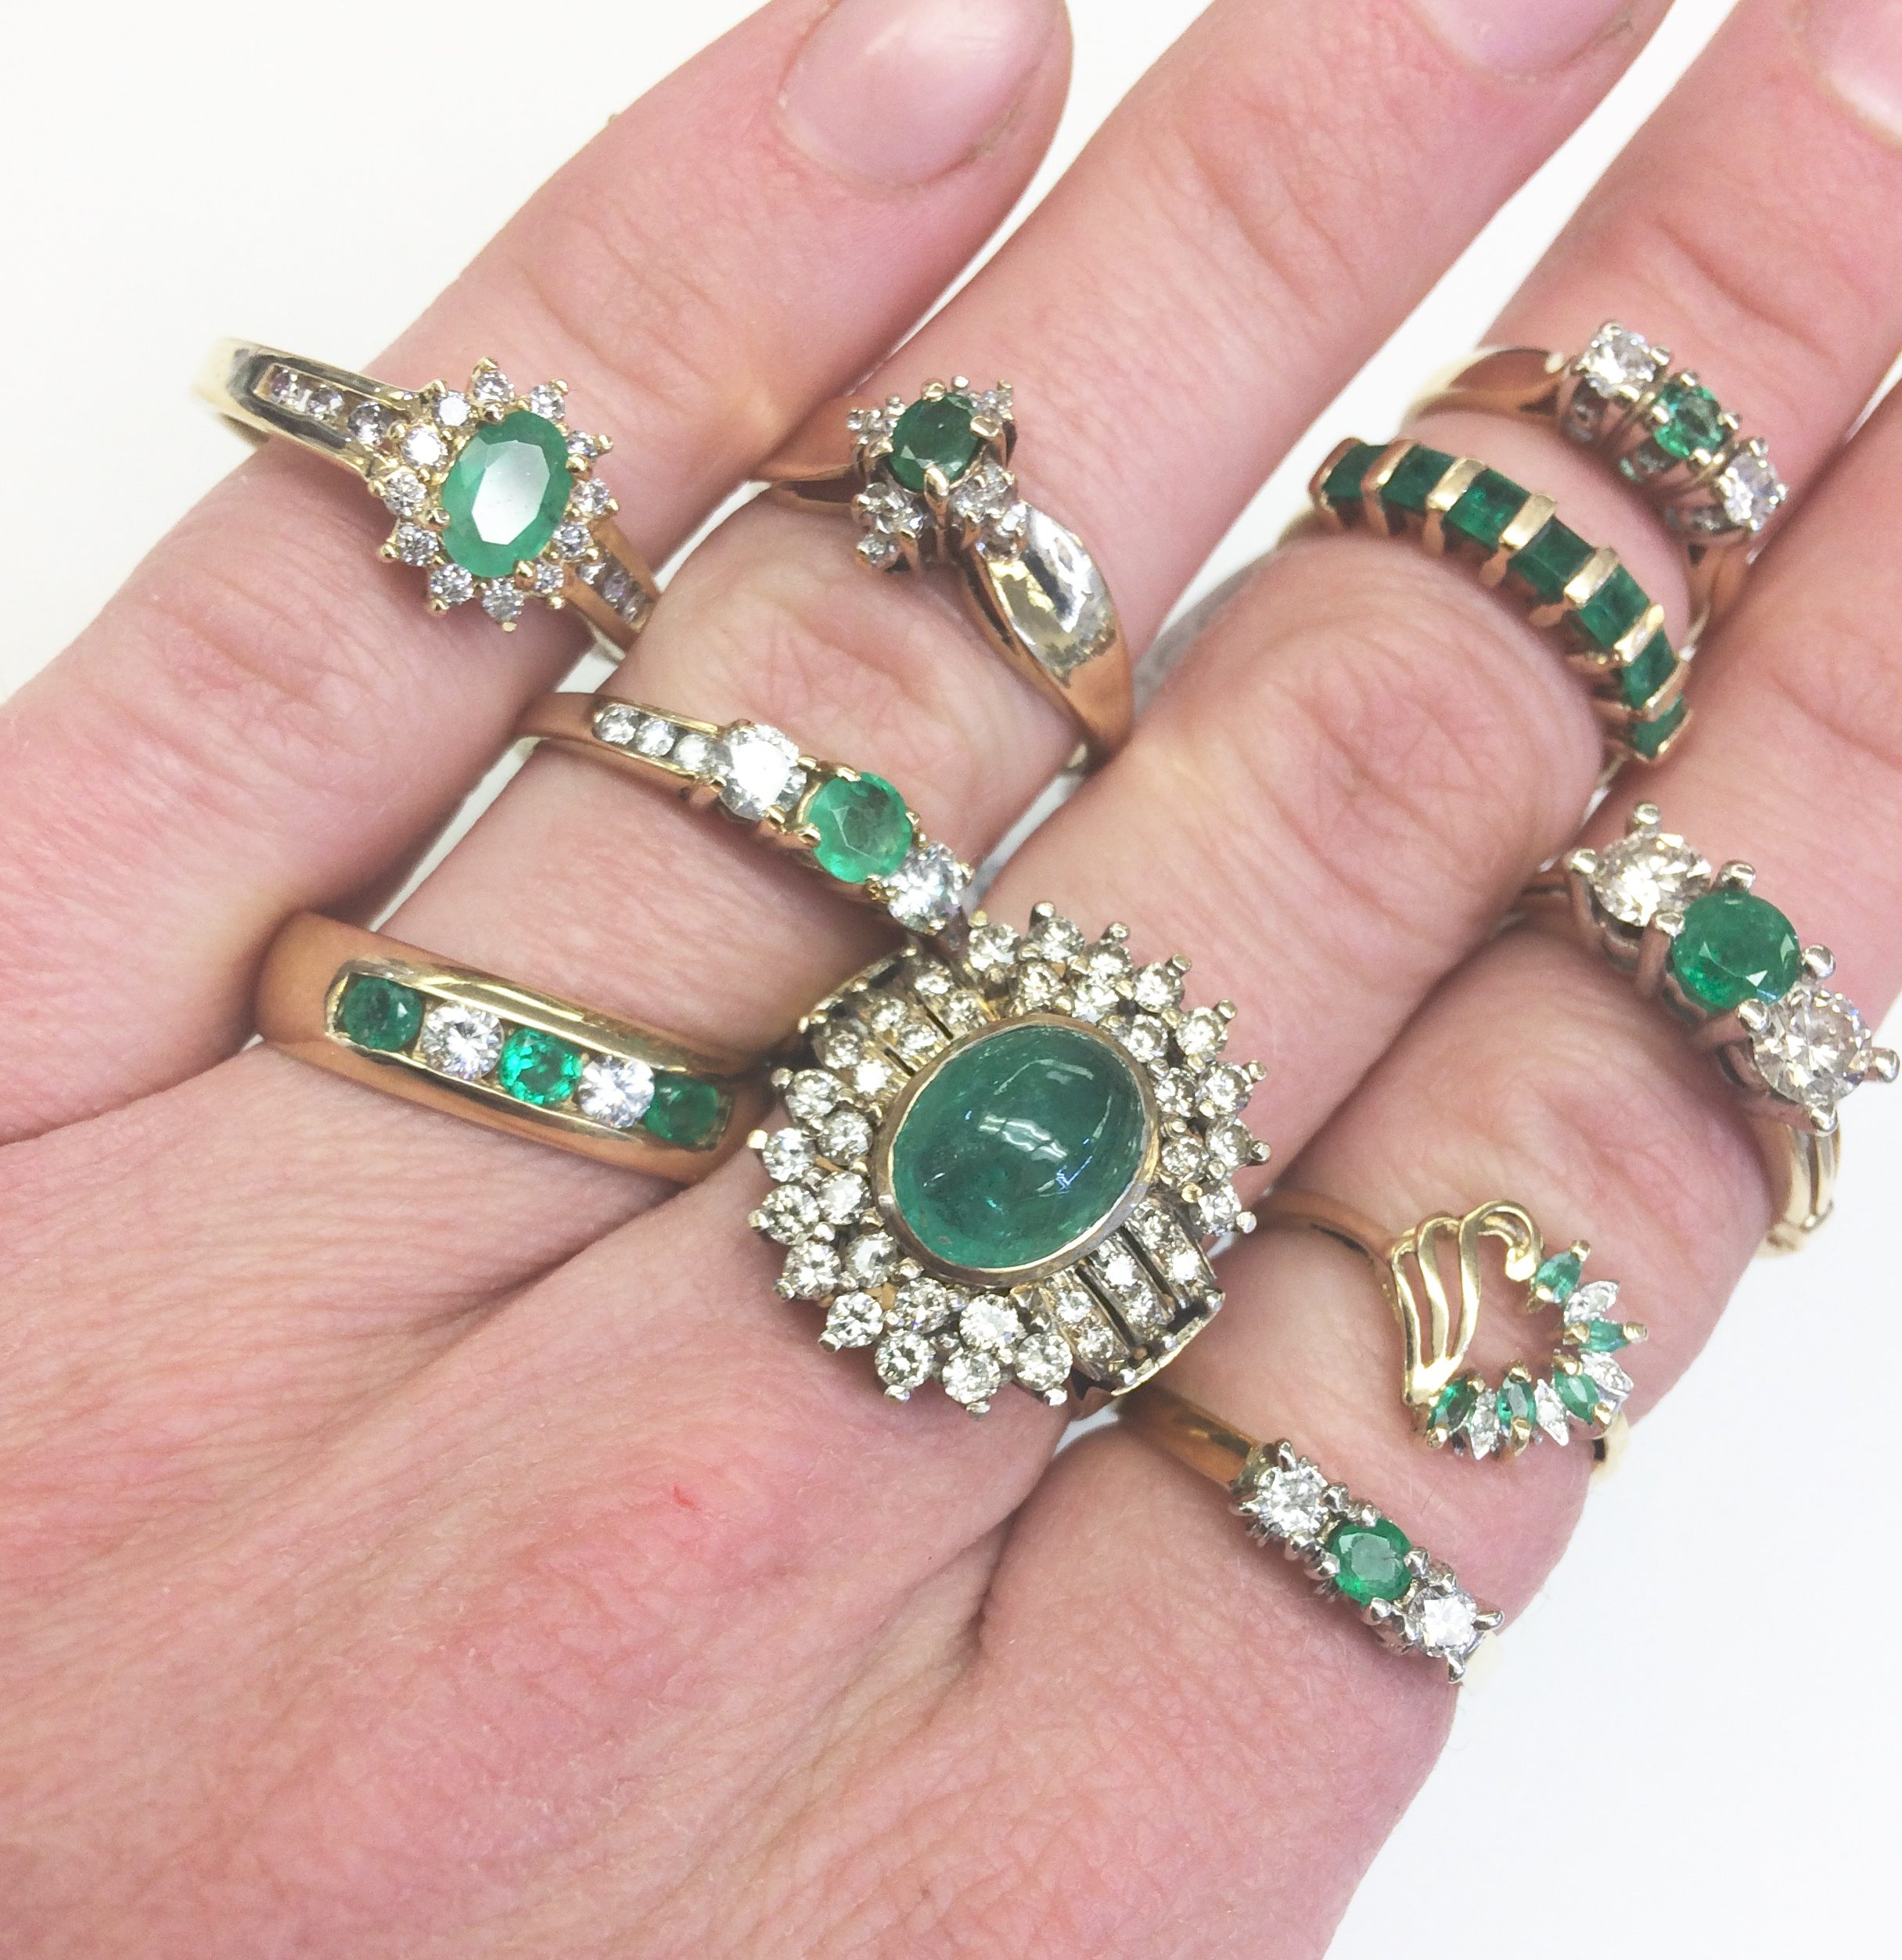 nordstrom bezel rings emeral emerald siena bqgrhu ring jewelry products baguette diamond